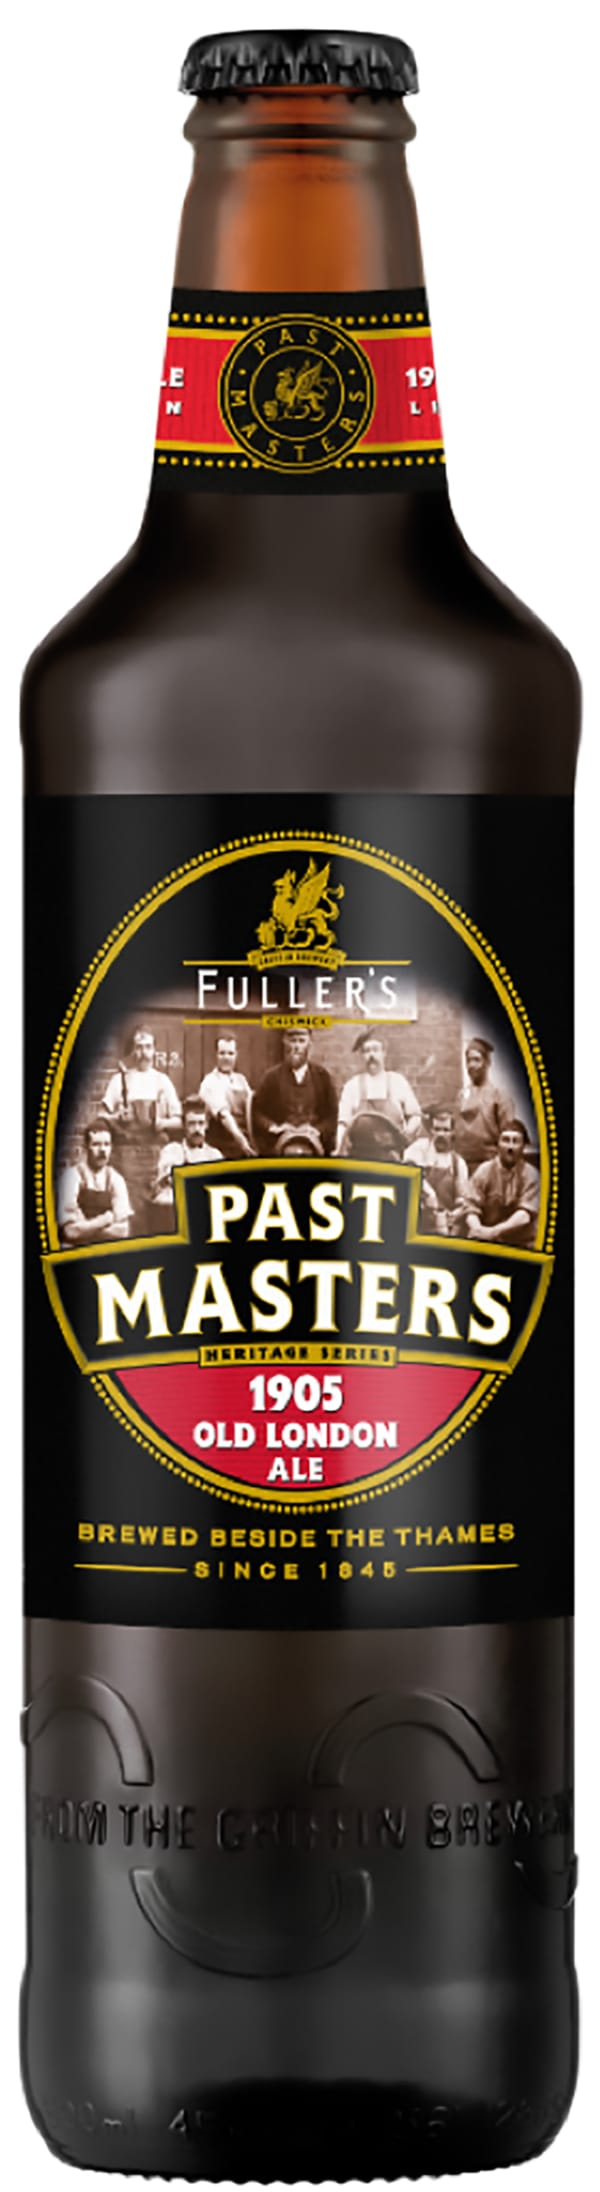 Fullers Past Masters 1905 Old London Ale